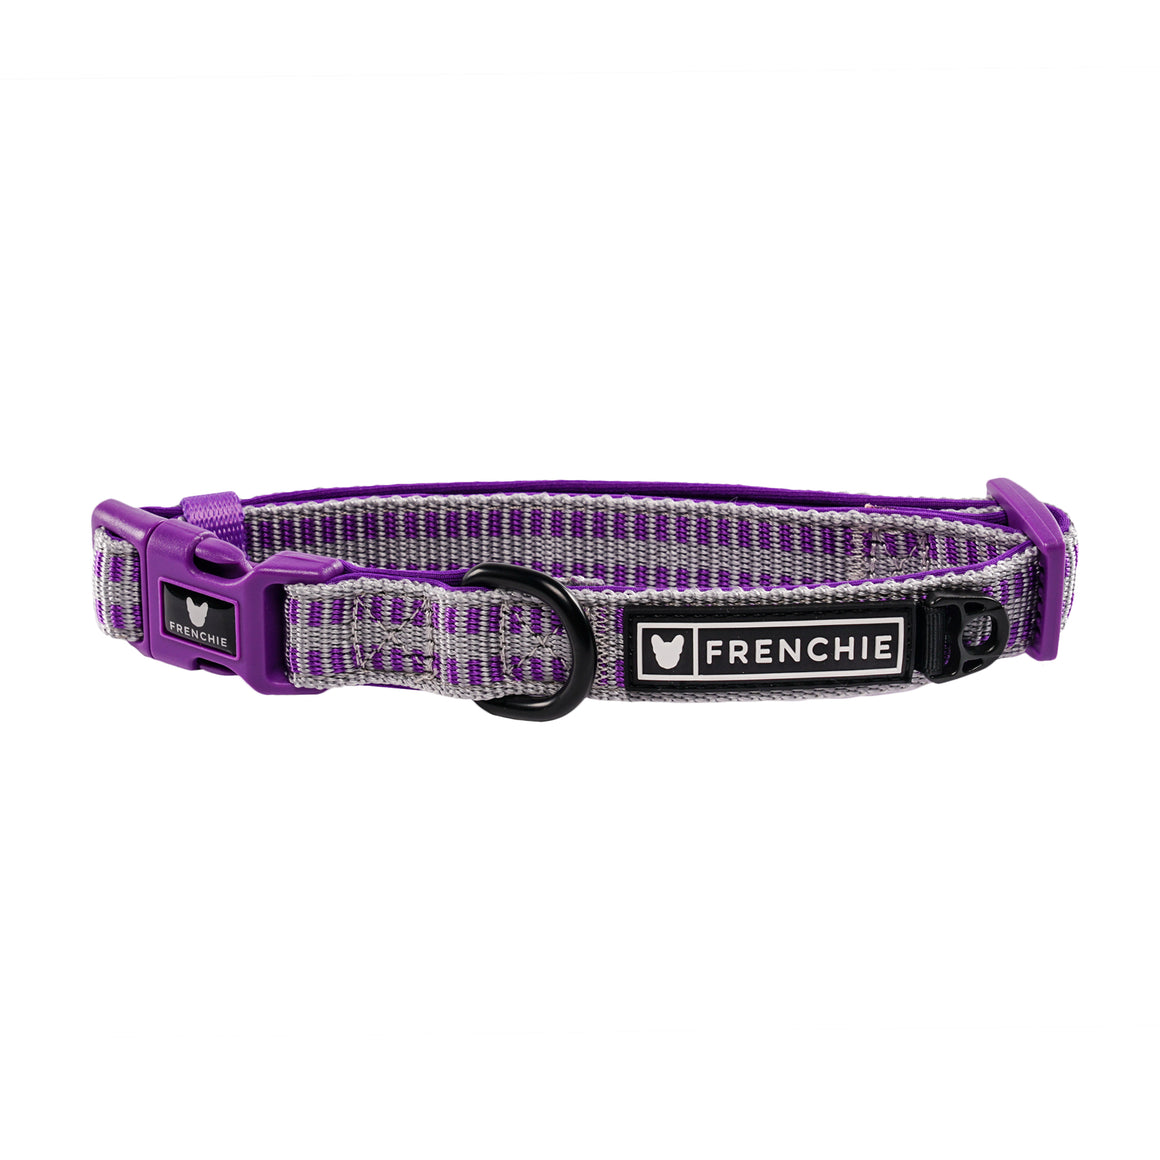 Frenchie Comfort Collar - Purple and Silver